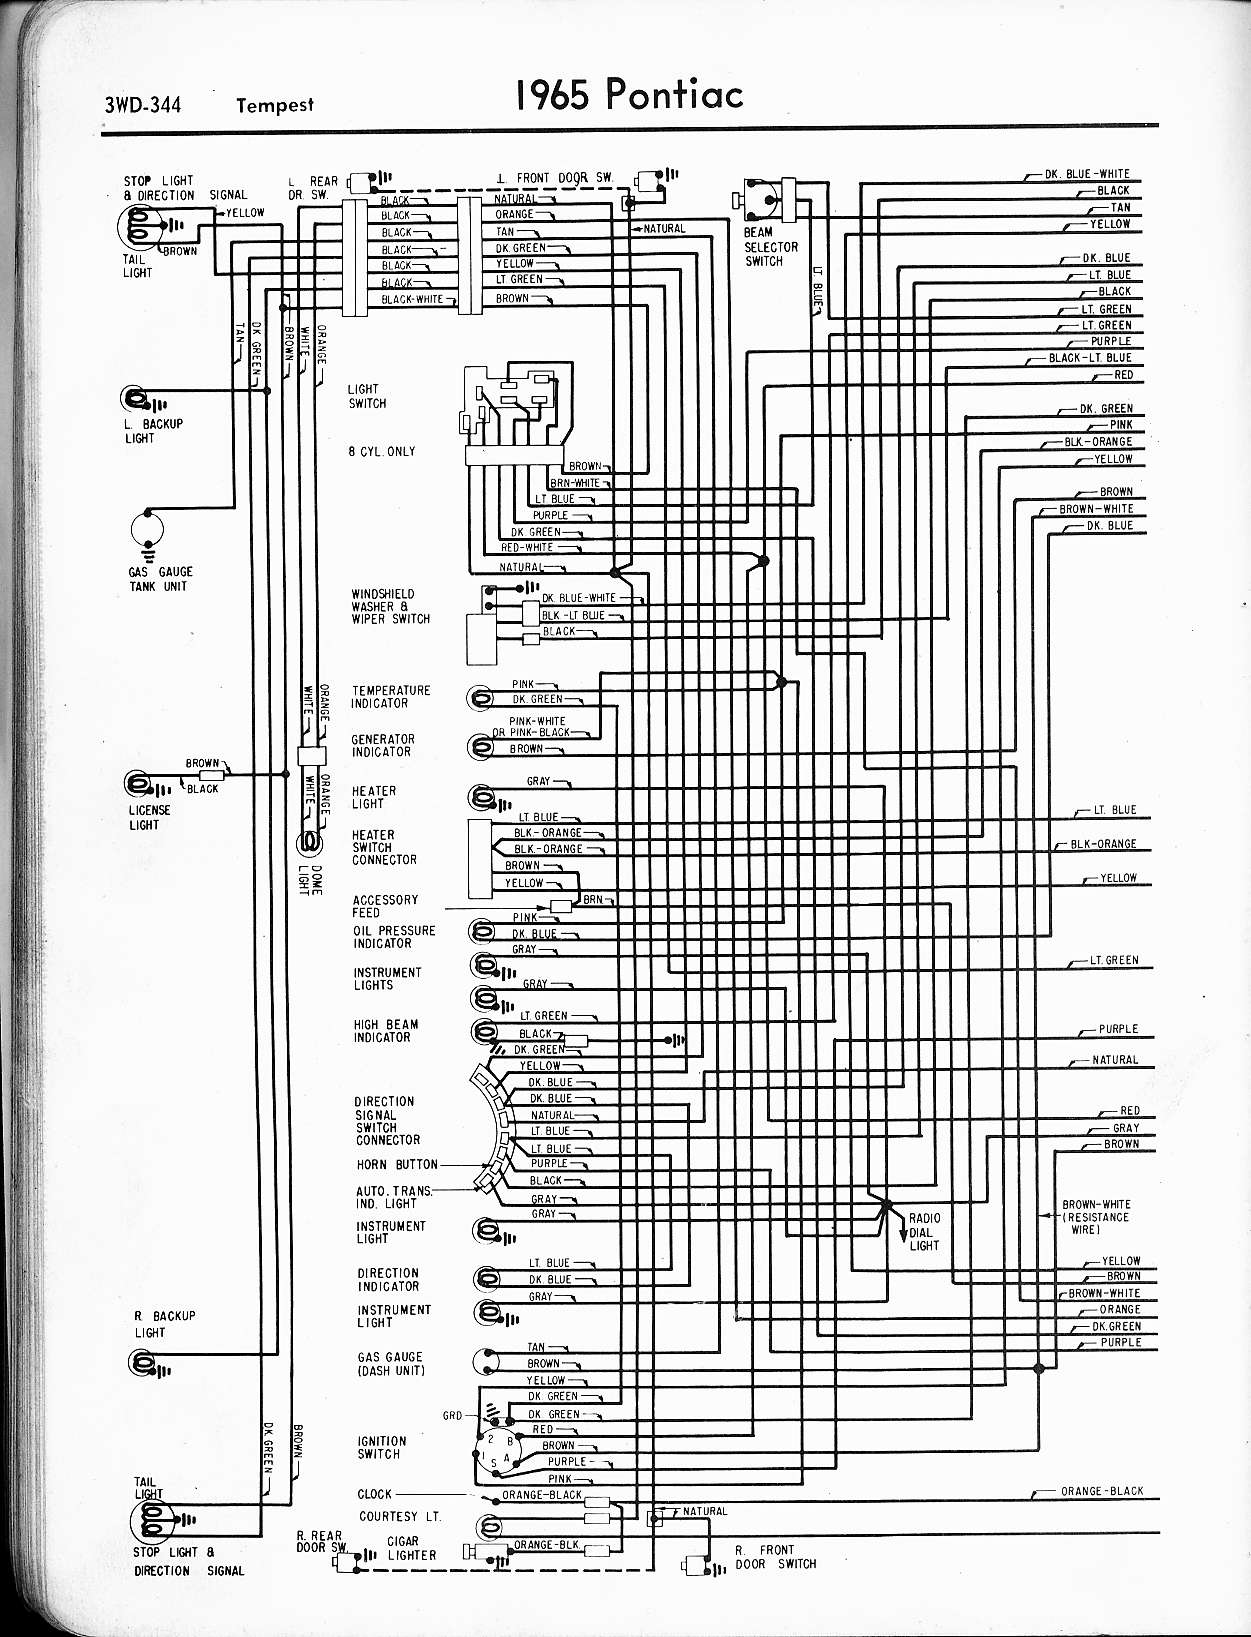 1965 pontiac gto rally gauge wiring diagram wiring diagram rh gregmadison co 1967 Camaro Wiring Diagram 1967 Galaxie 500 Wiring